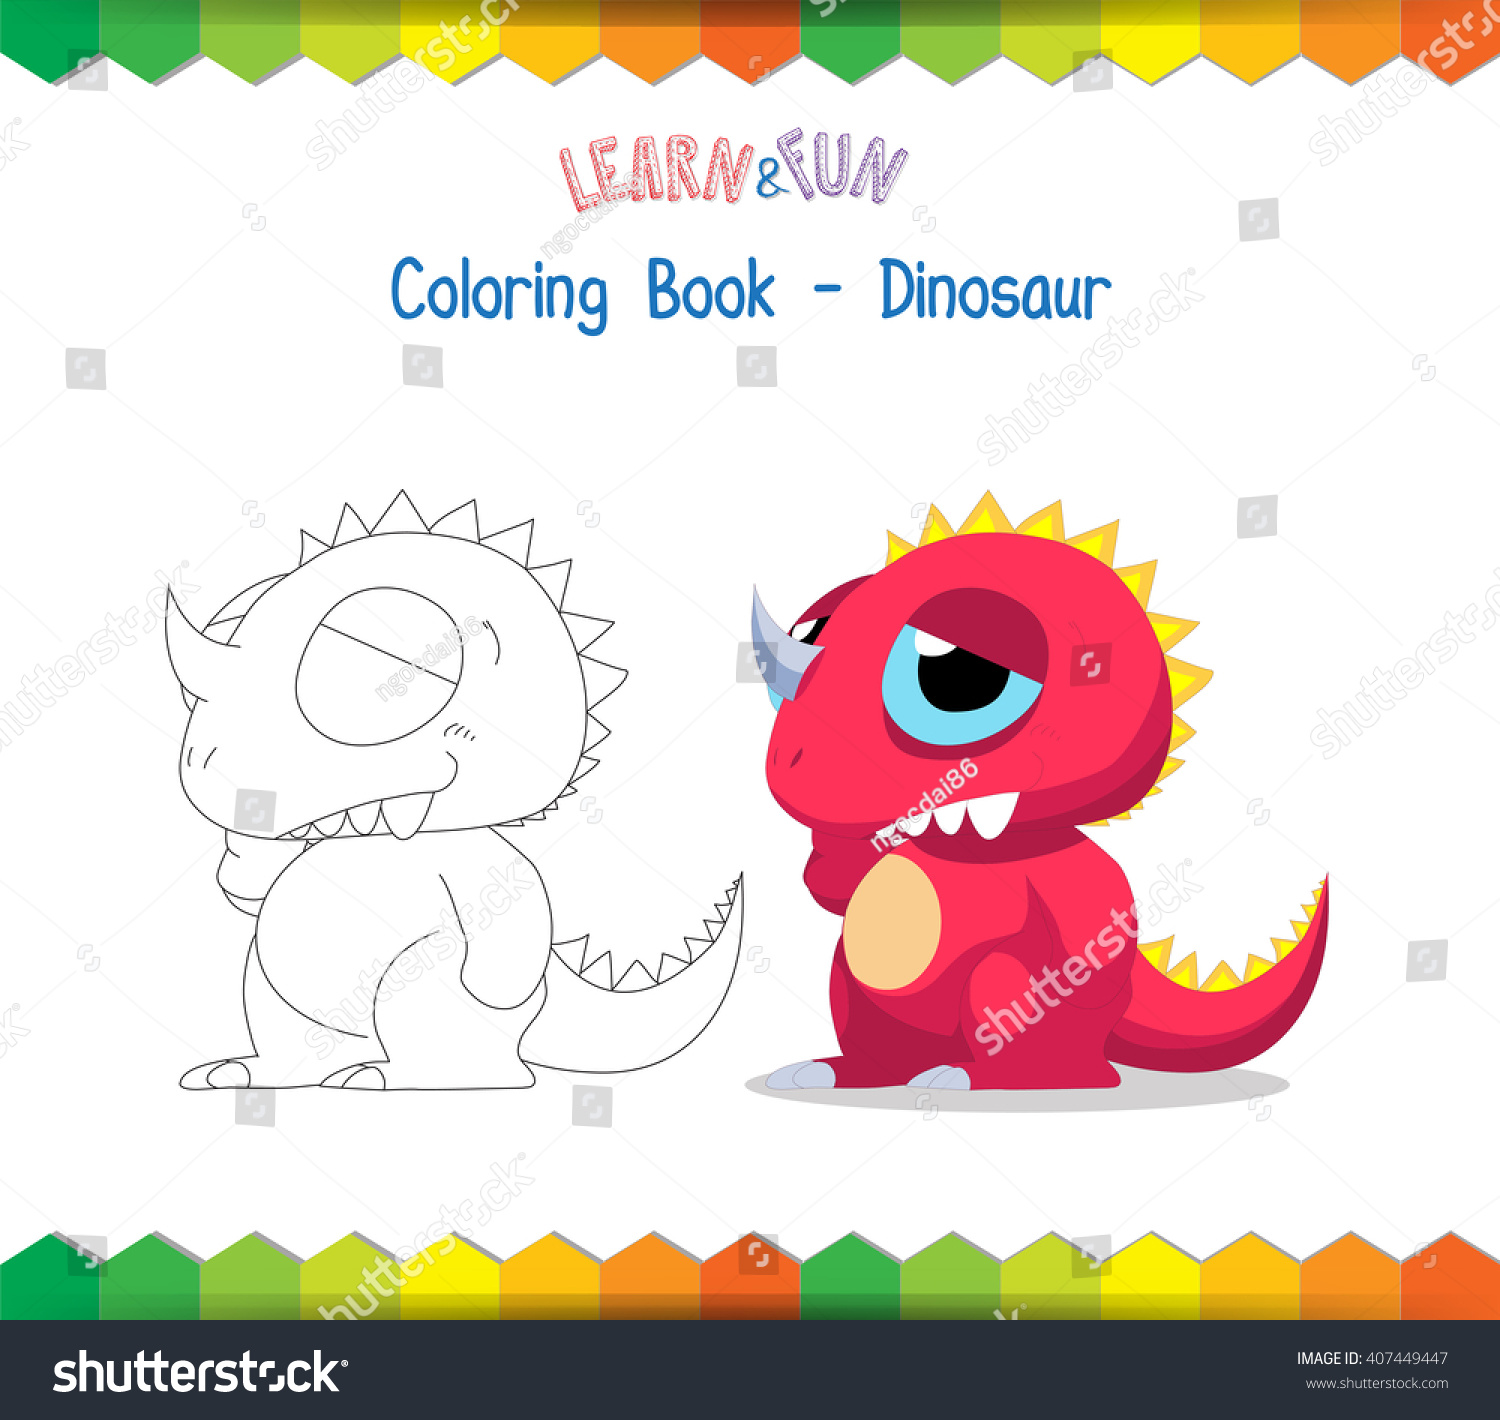 Dinosaur Coloring Book Educational Game